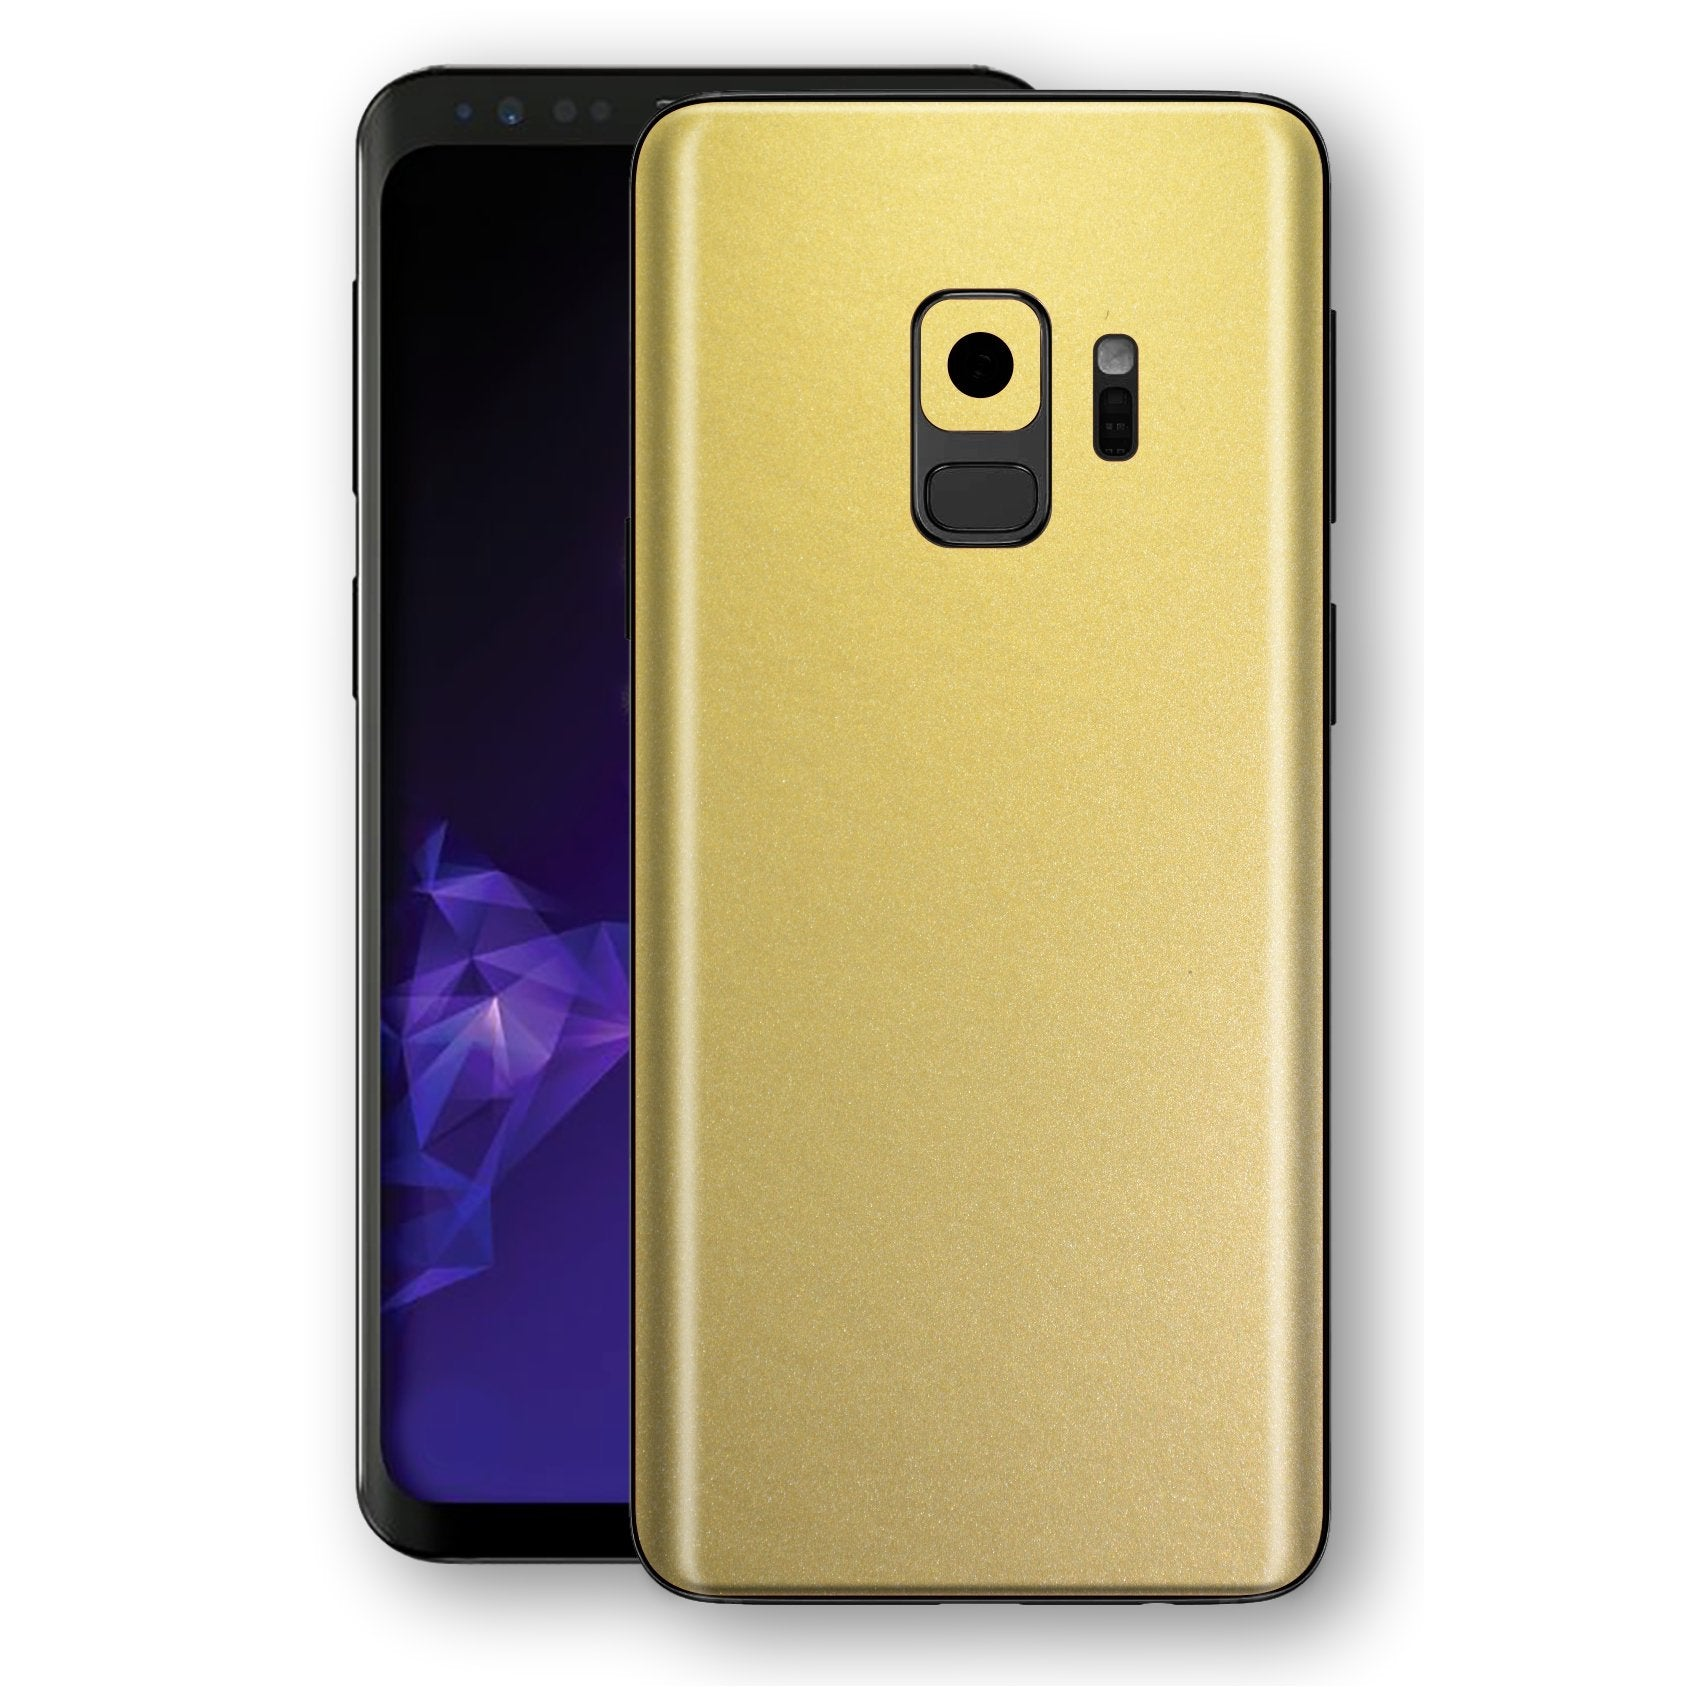 Samsung GALAXY S9 Gold Matt Metallic Skin, Decal, Wrap, Protector, Cover by EasySkinz | EasySkinz.com